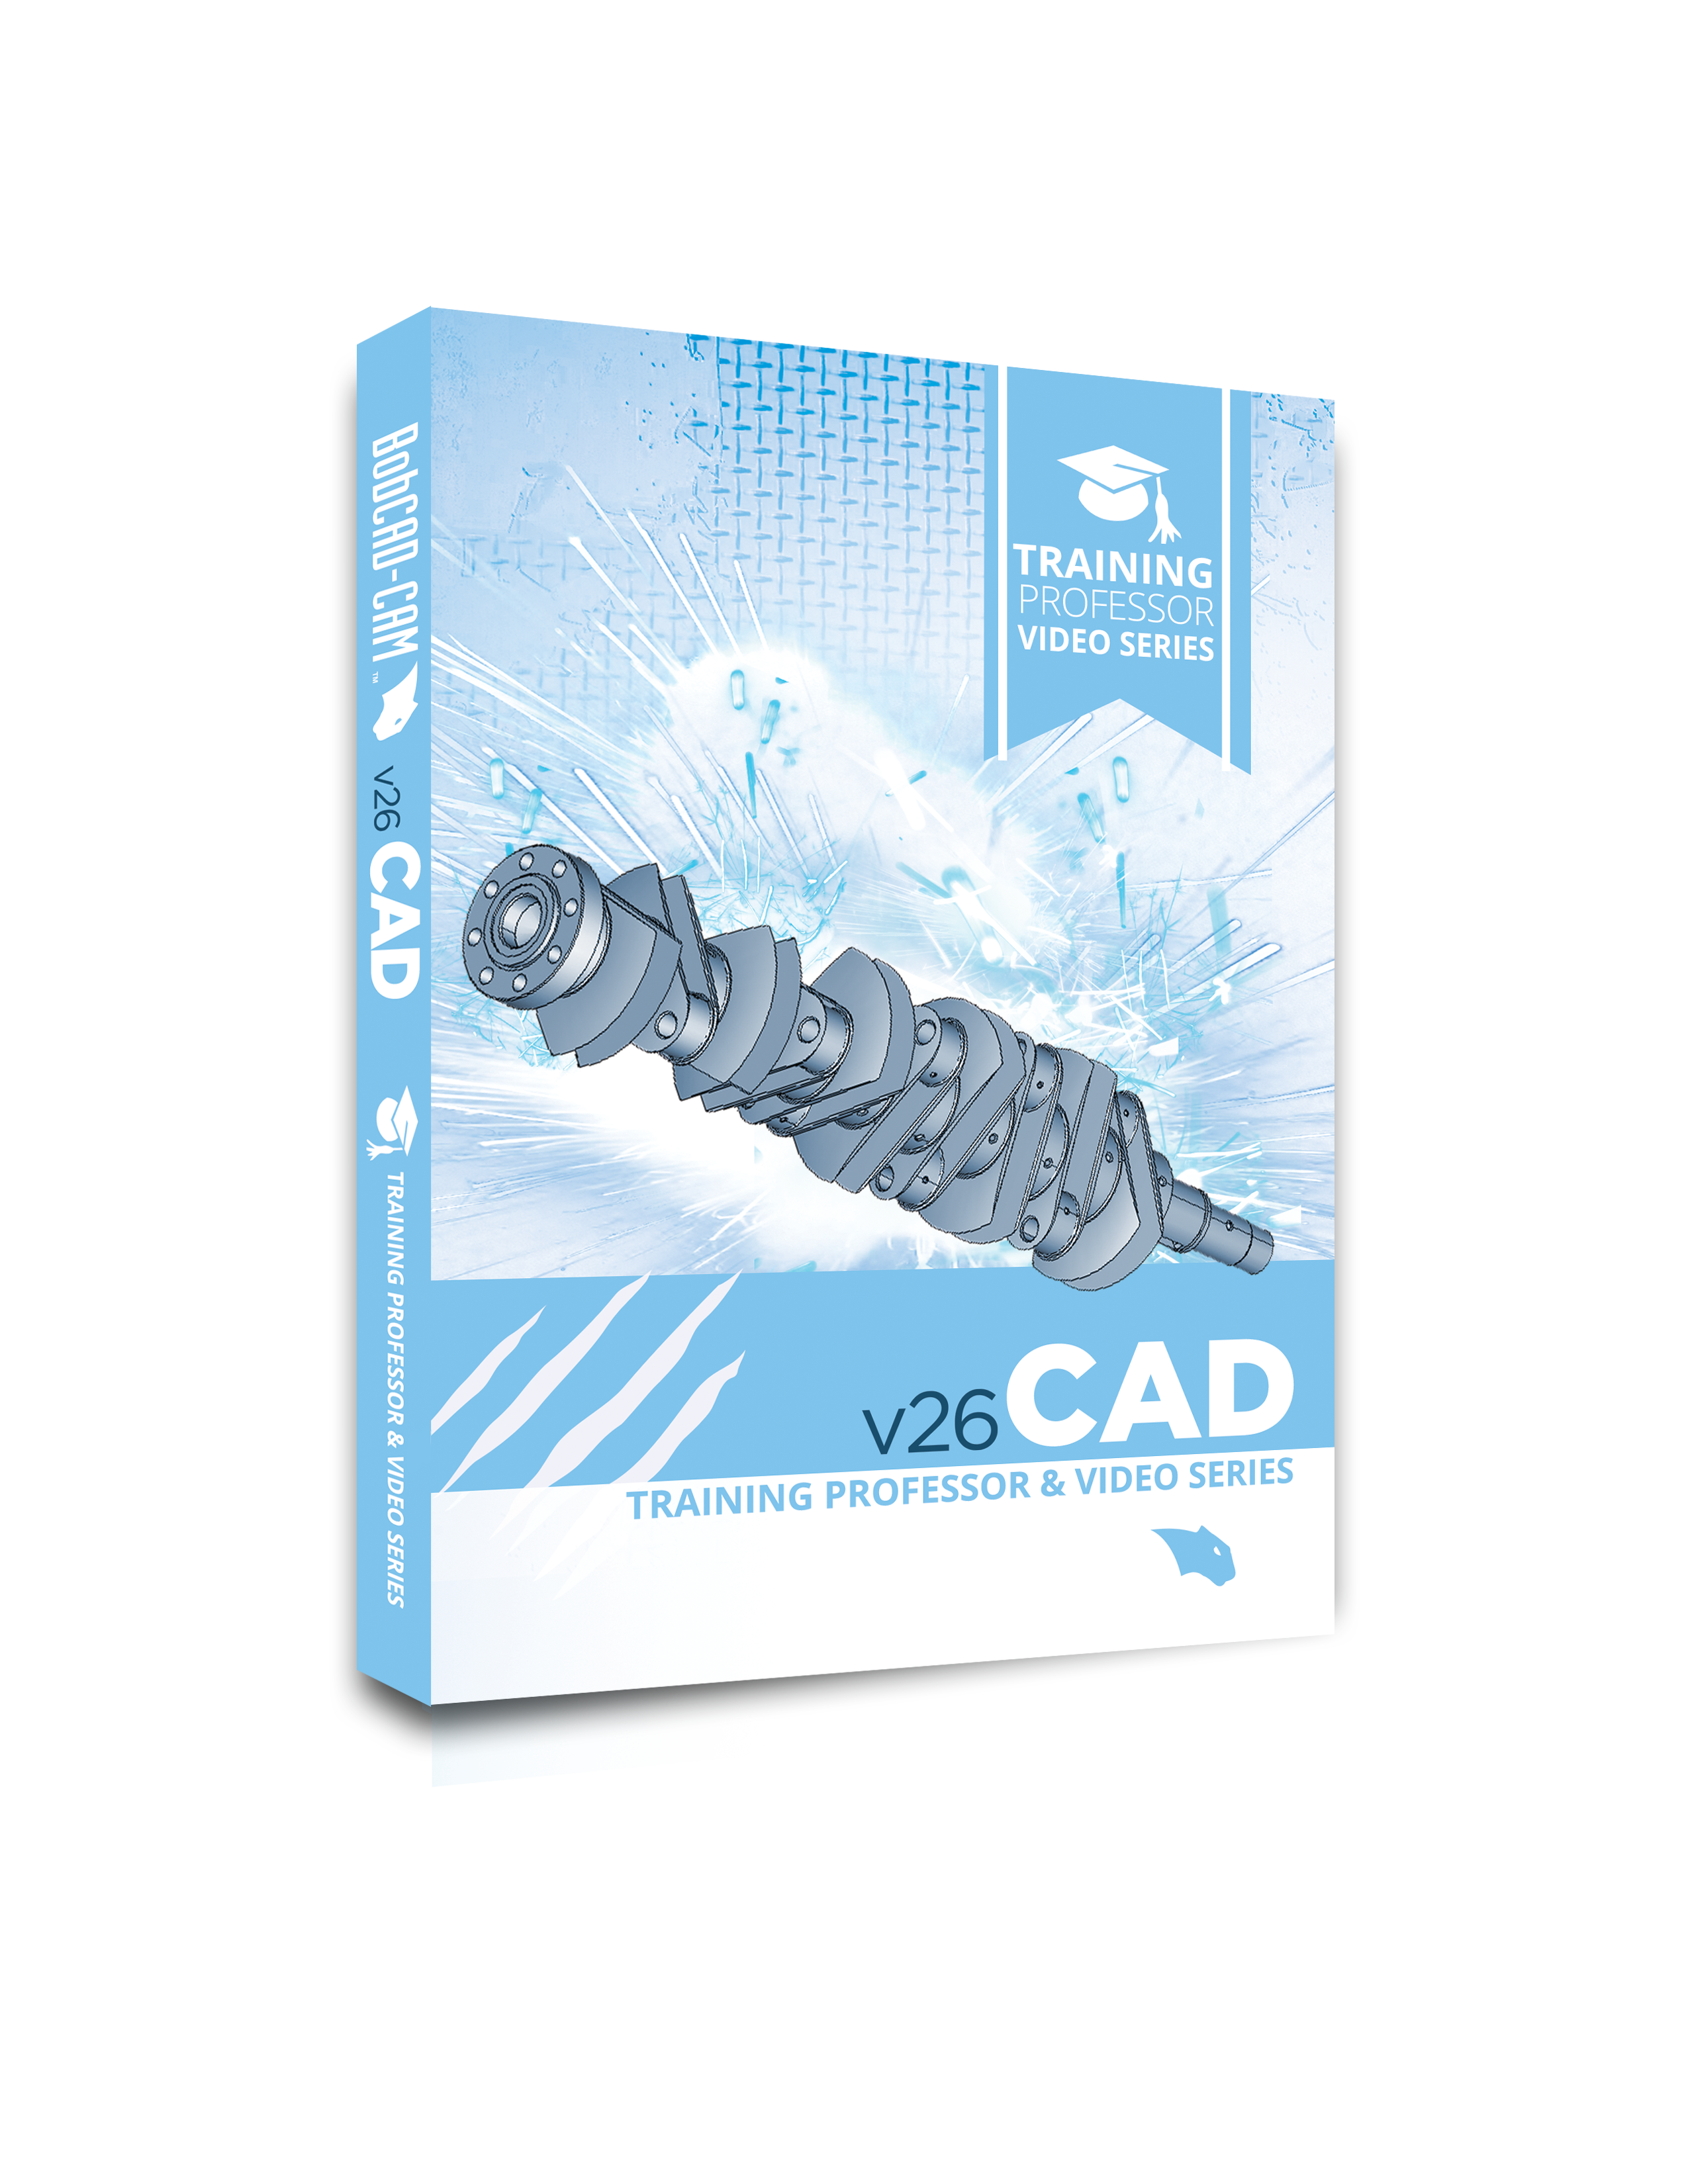 New CAD Design Software Training Release